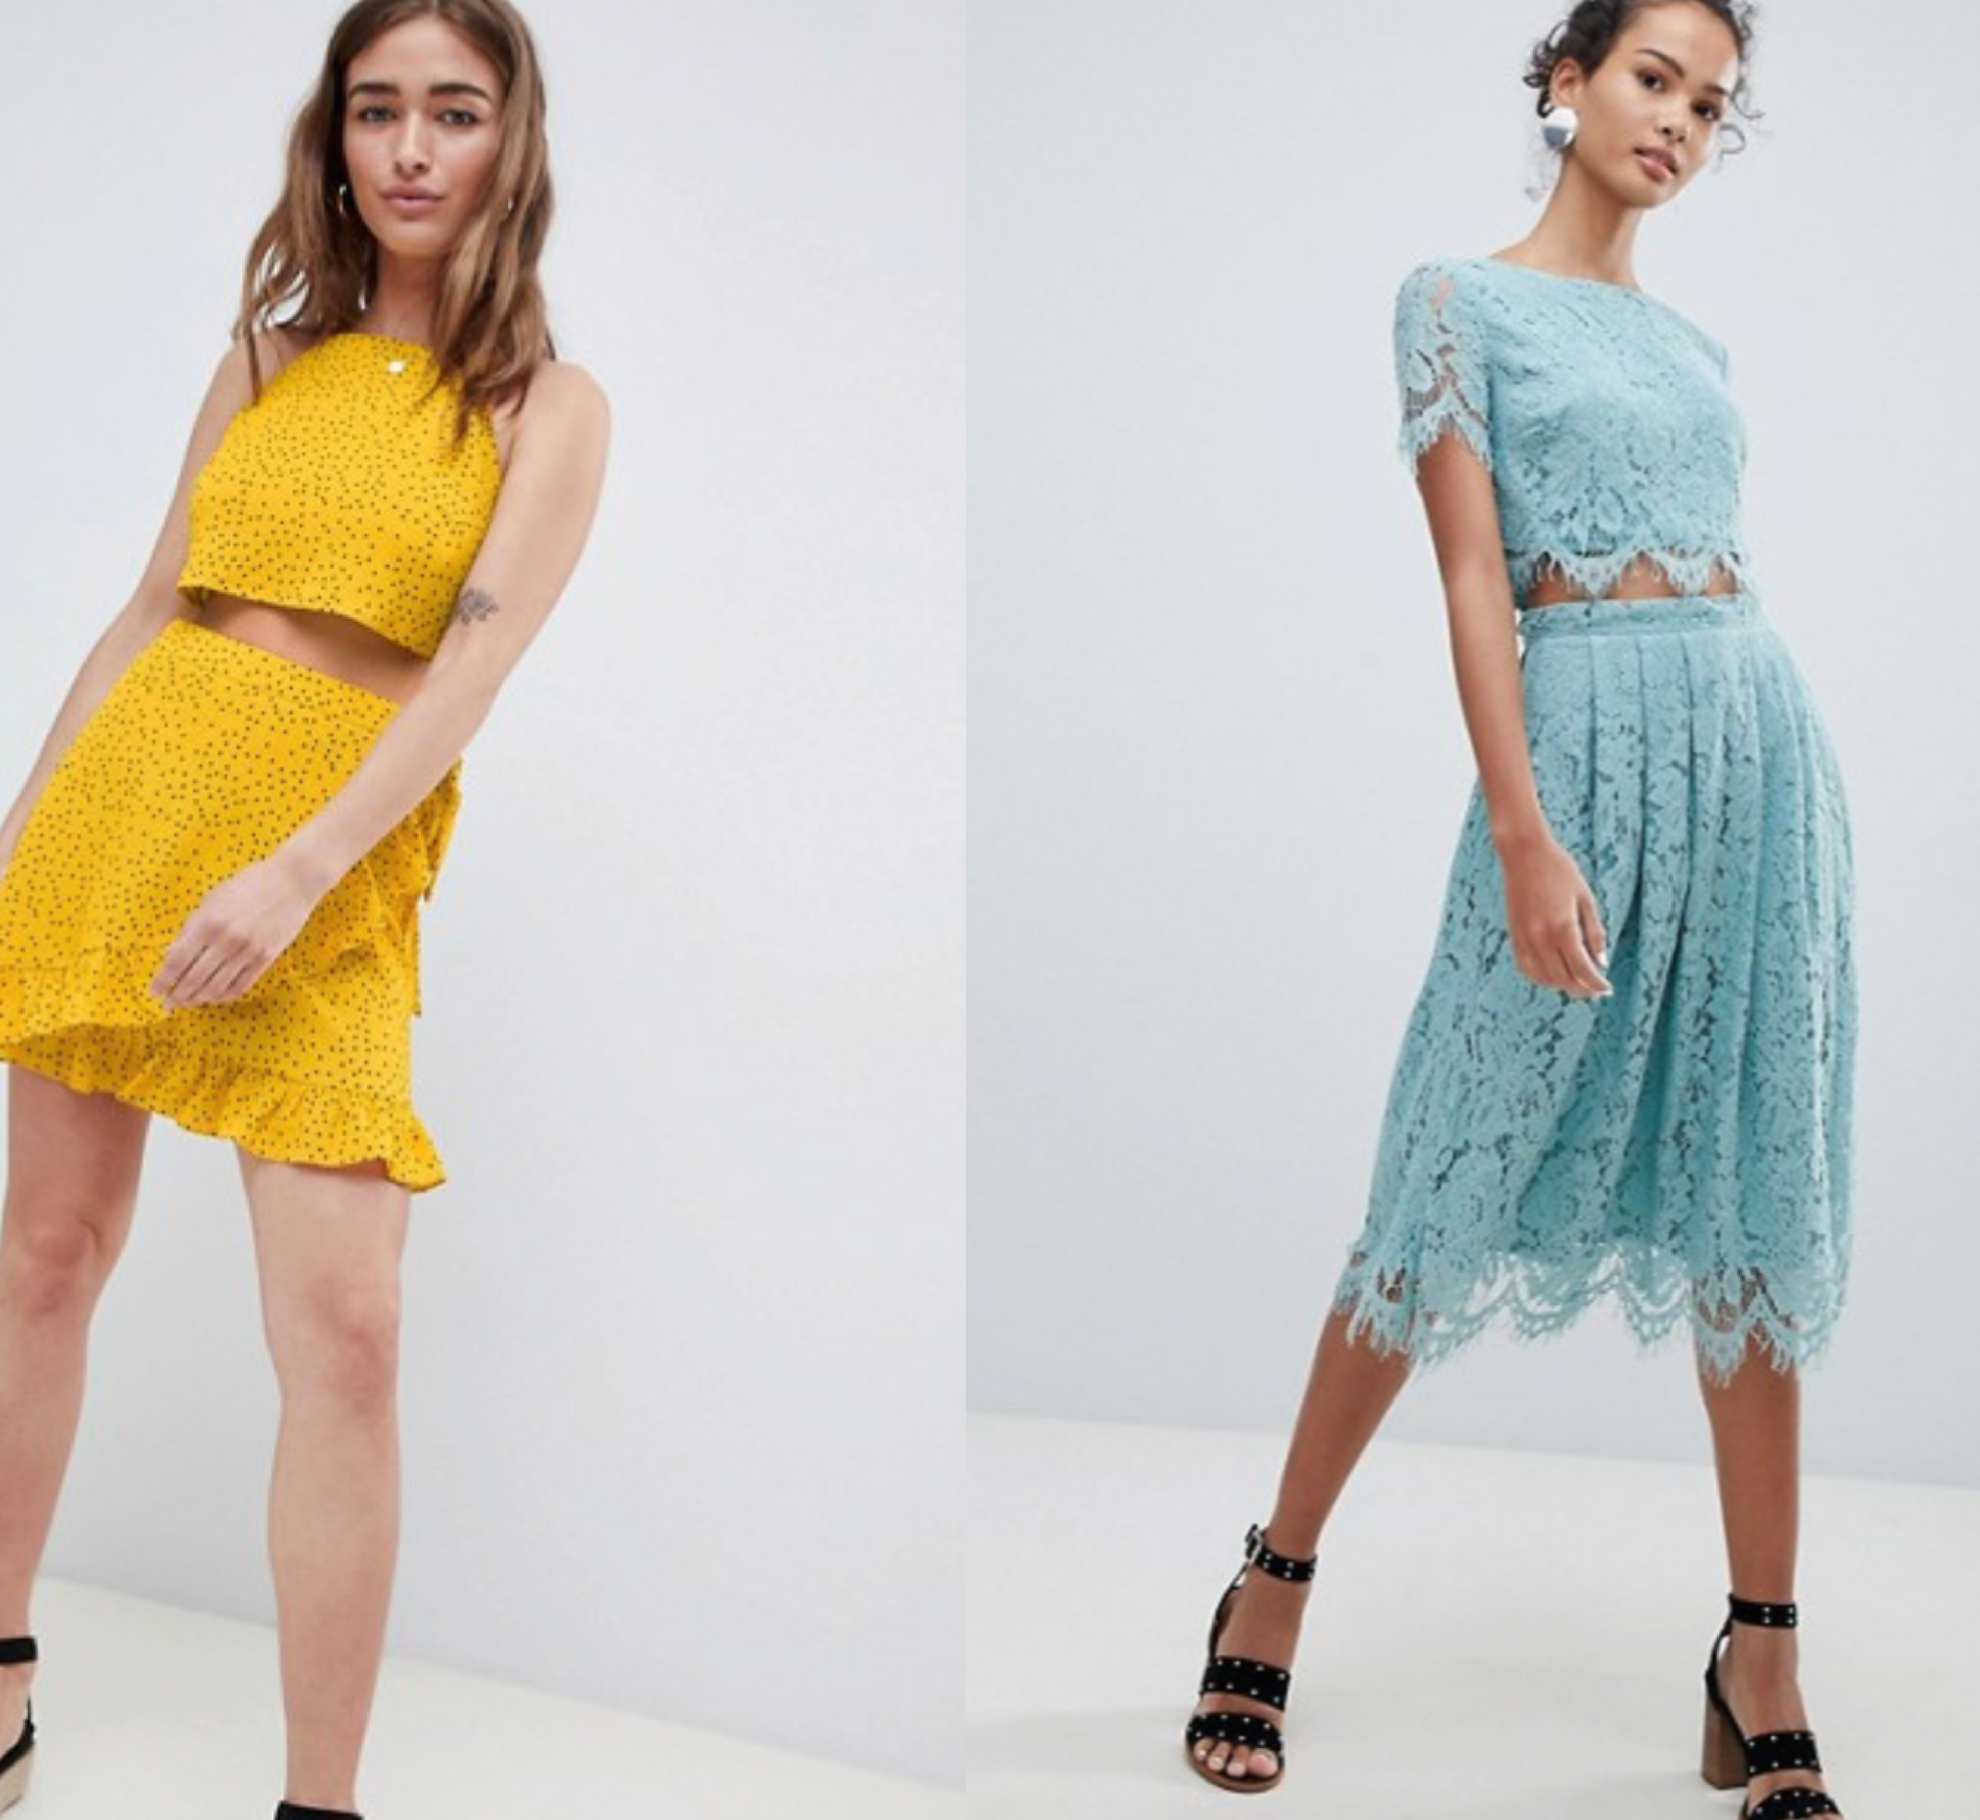 shop the look - ASOS- Glamorous Petite High Neck Crop Top & Mini Skirt In Ditsy Spot Co-Ord (left) New Look Lace Co-Ord Midi Skirt (right)